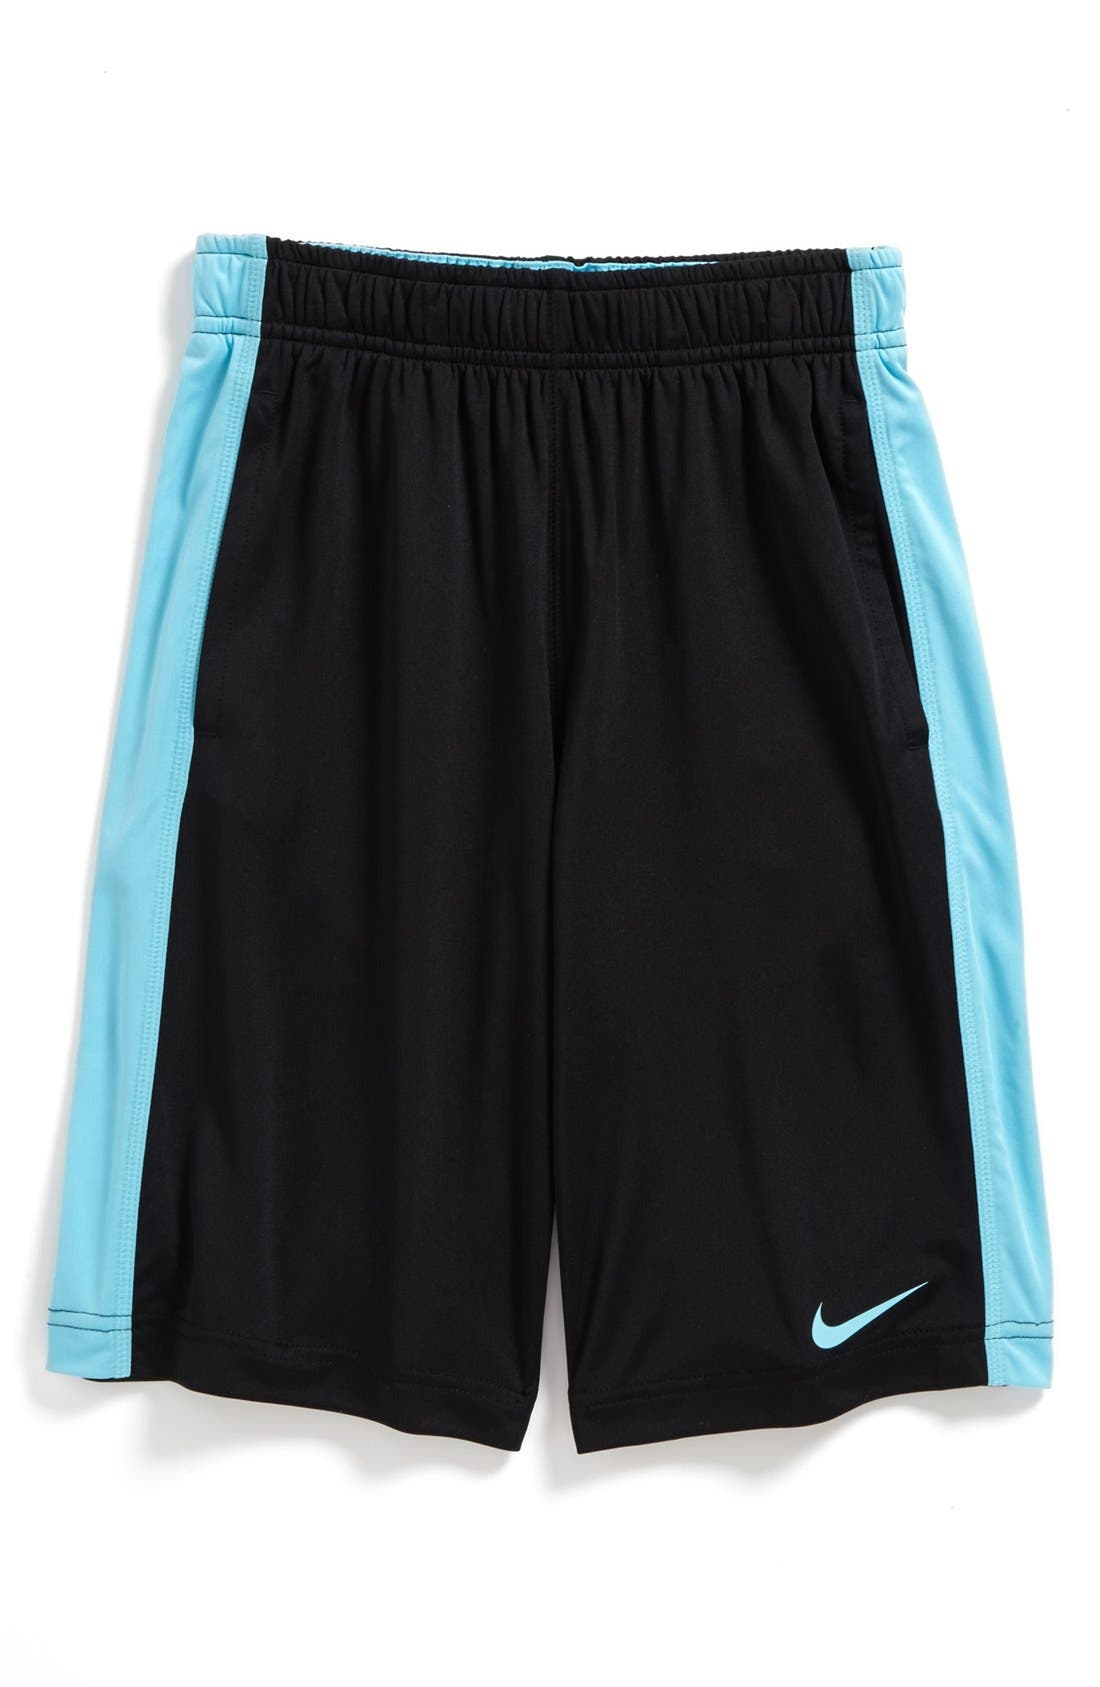 Alternate Image 1 Selected - Nike 'Fly' Dri-FIT Shorts (Big Boys)